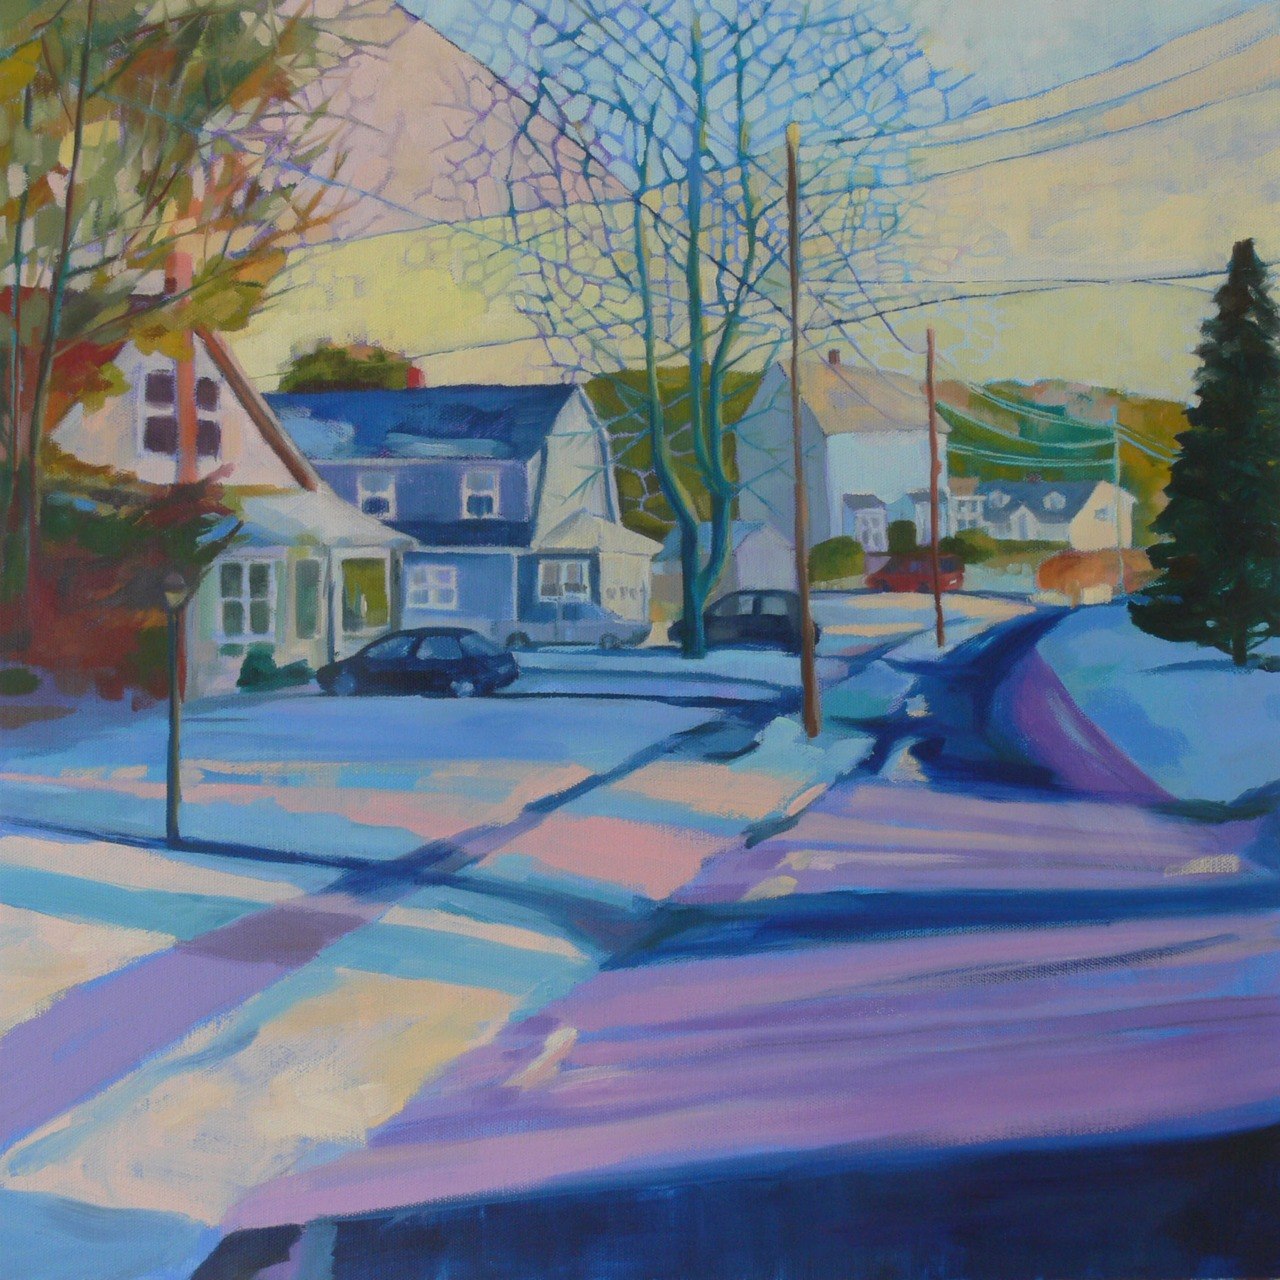 "24""x24"", oil on canvas   This is me trying to be inspired by the snow.  Actually, it's the power lines and the streaks of light that really got me going.  And of course the trees.  Always the trees."